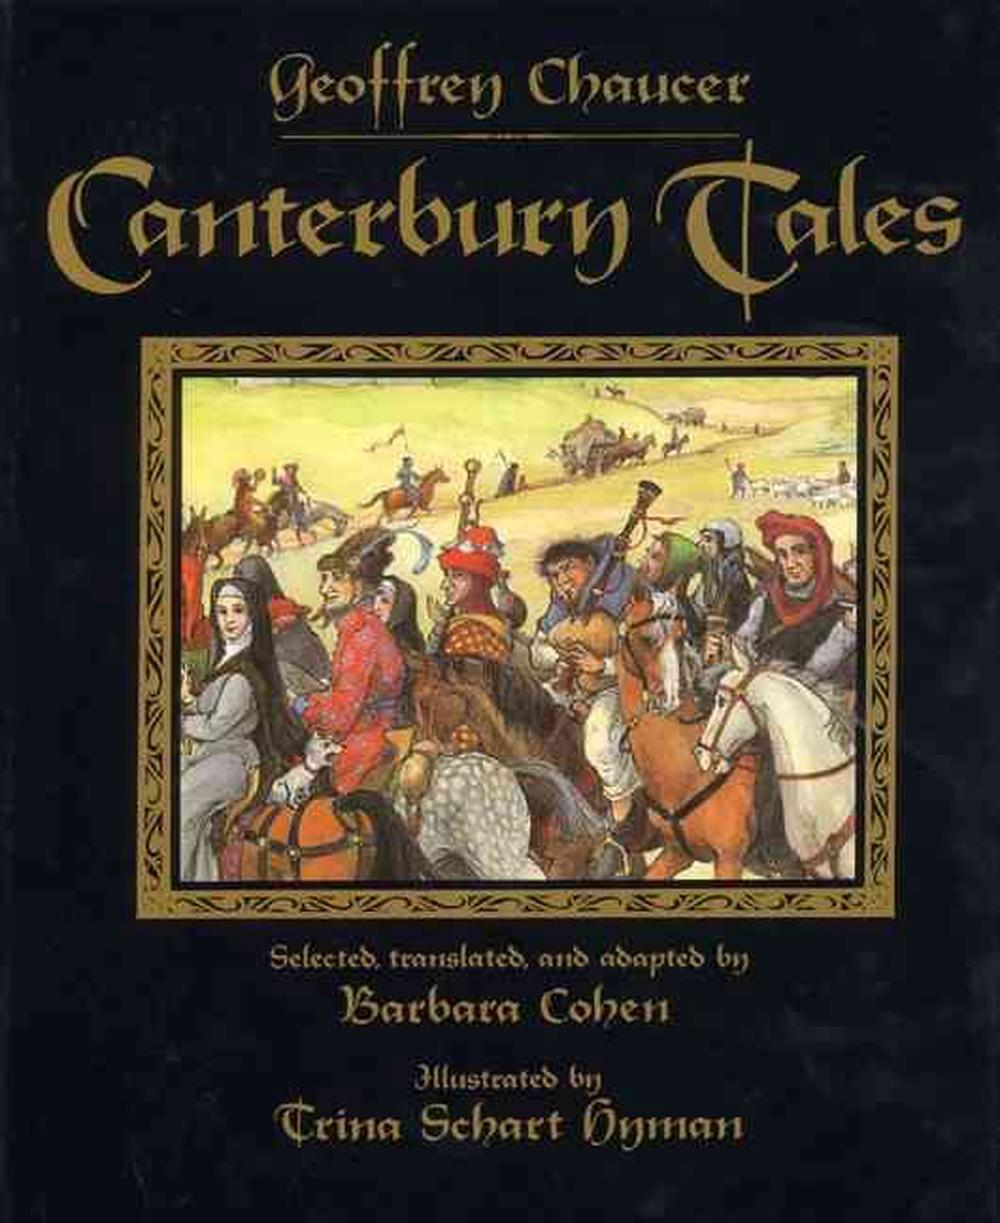 an analysis of women in canterbury tales by geoffrey chaucer The canterbury tales by geoffrey chaucer serves as a moral manual for the 1300's and years after through the faults of both men and woman, he shows in each persons story what is right and wrong and how one should live.